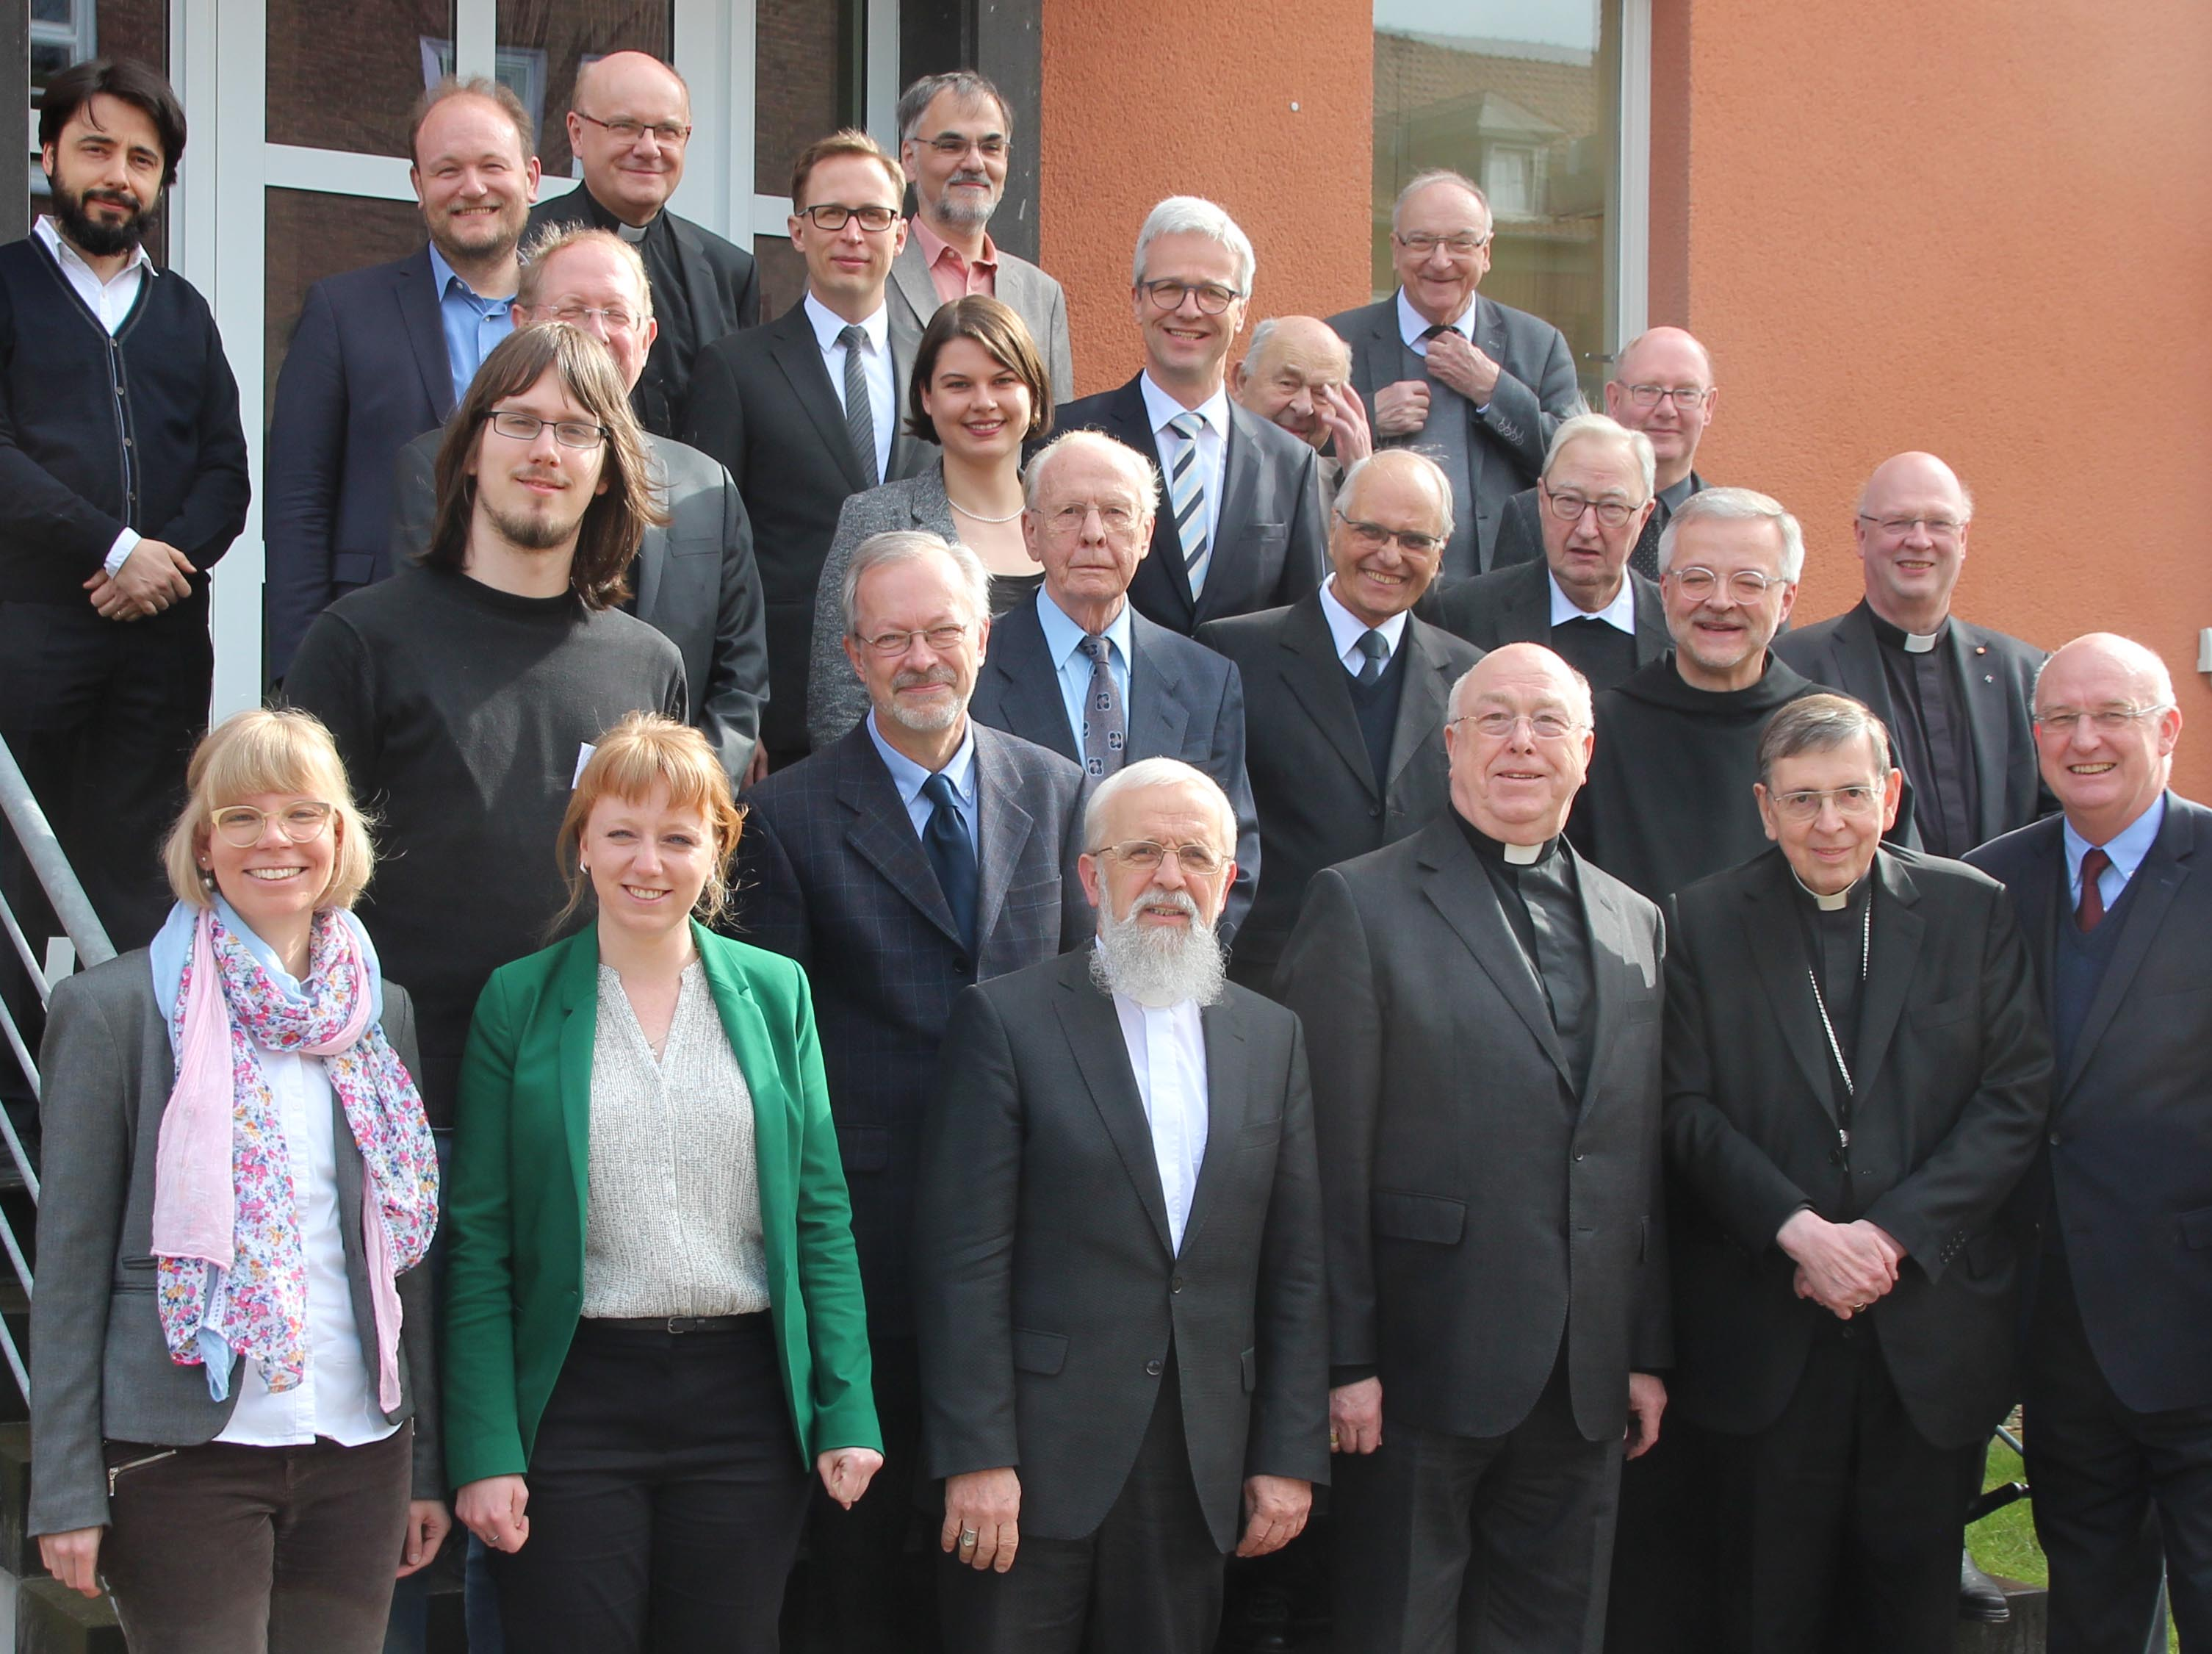 Meeting of the scientific advisory committee in April 2019